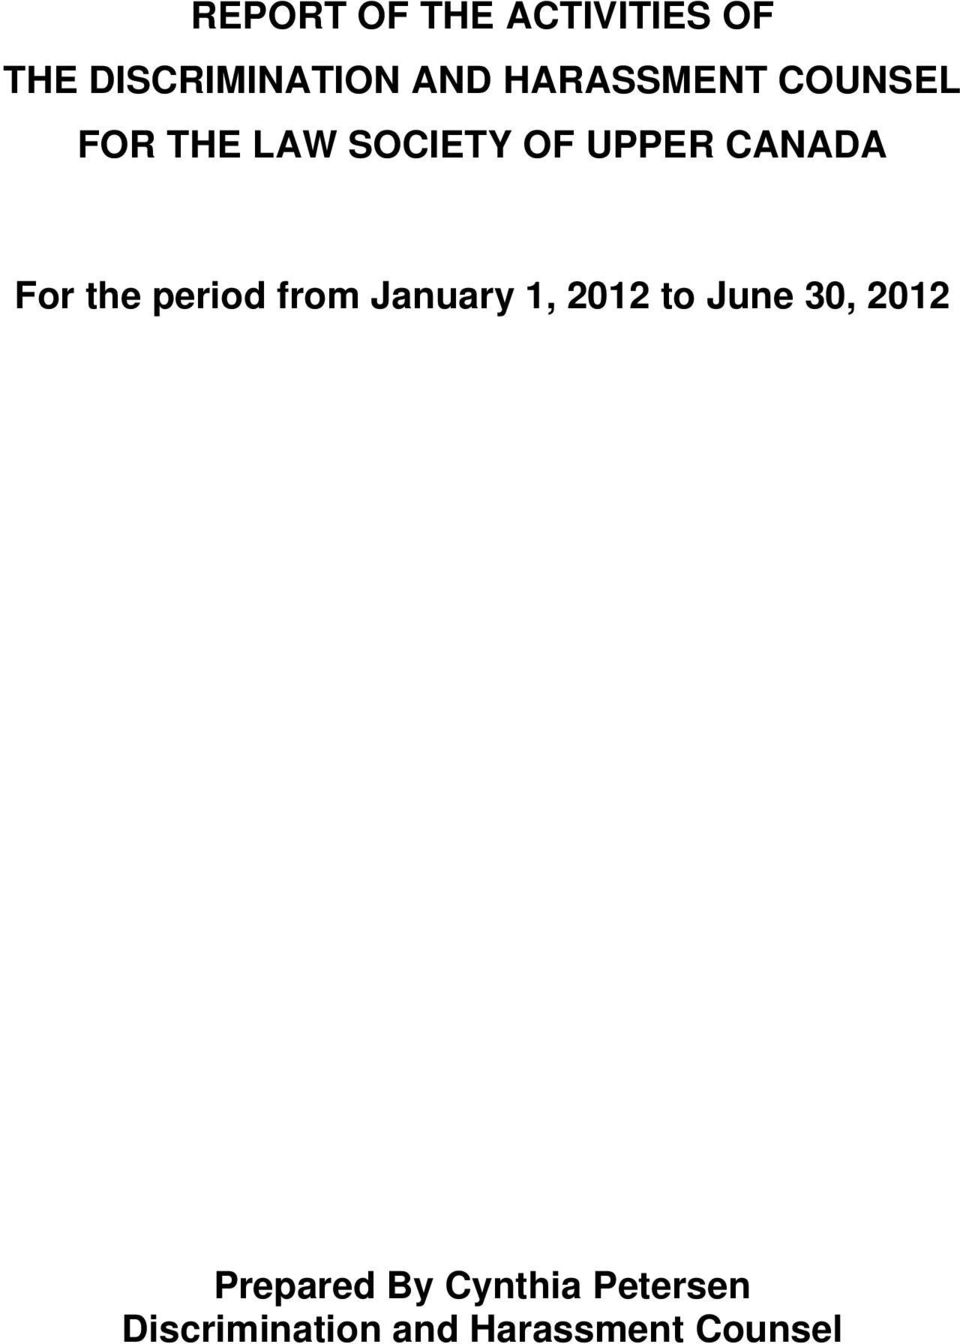 For the period from January 1, 2012 to June 30, 2012